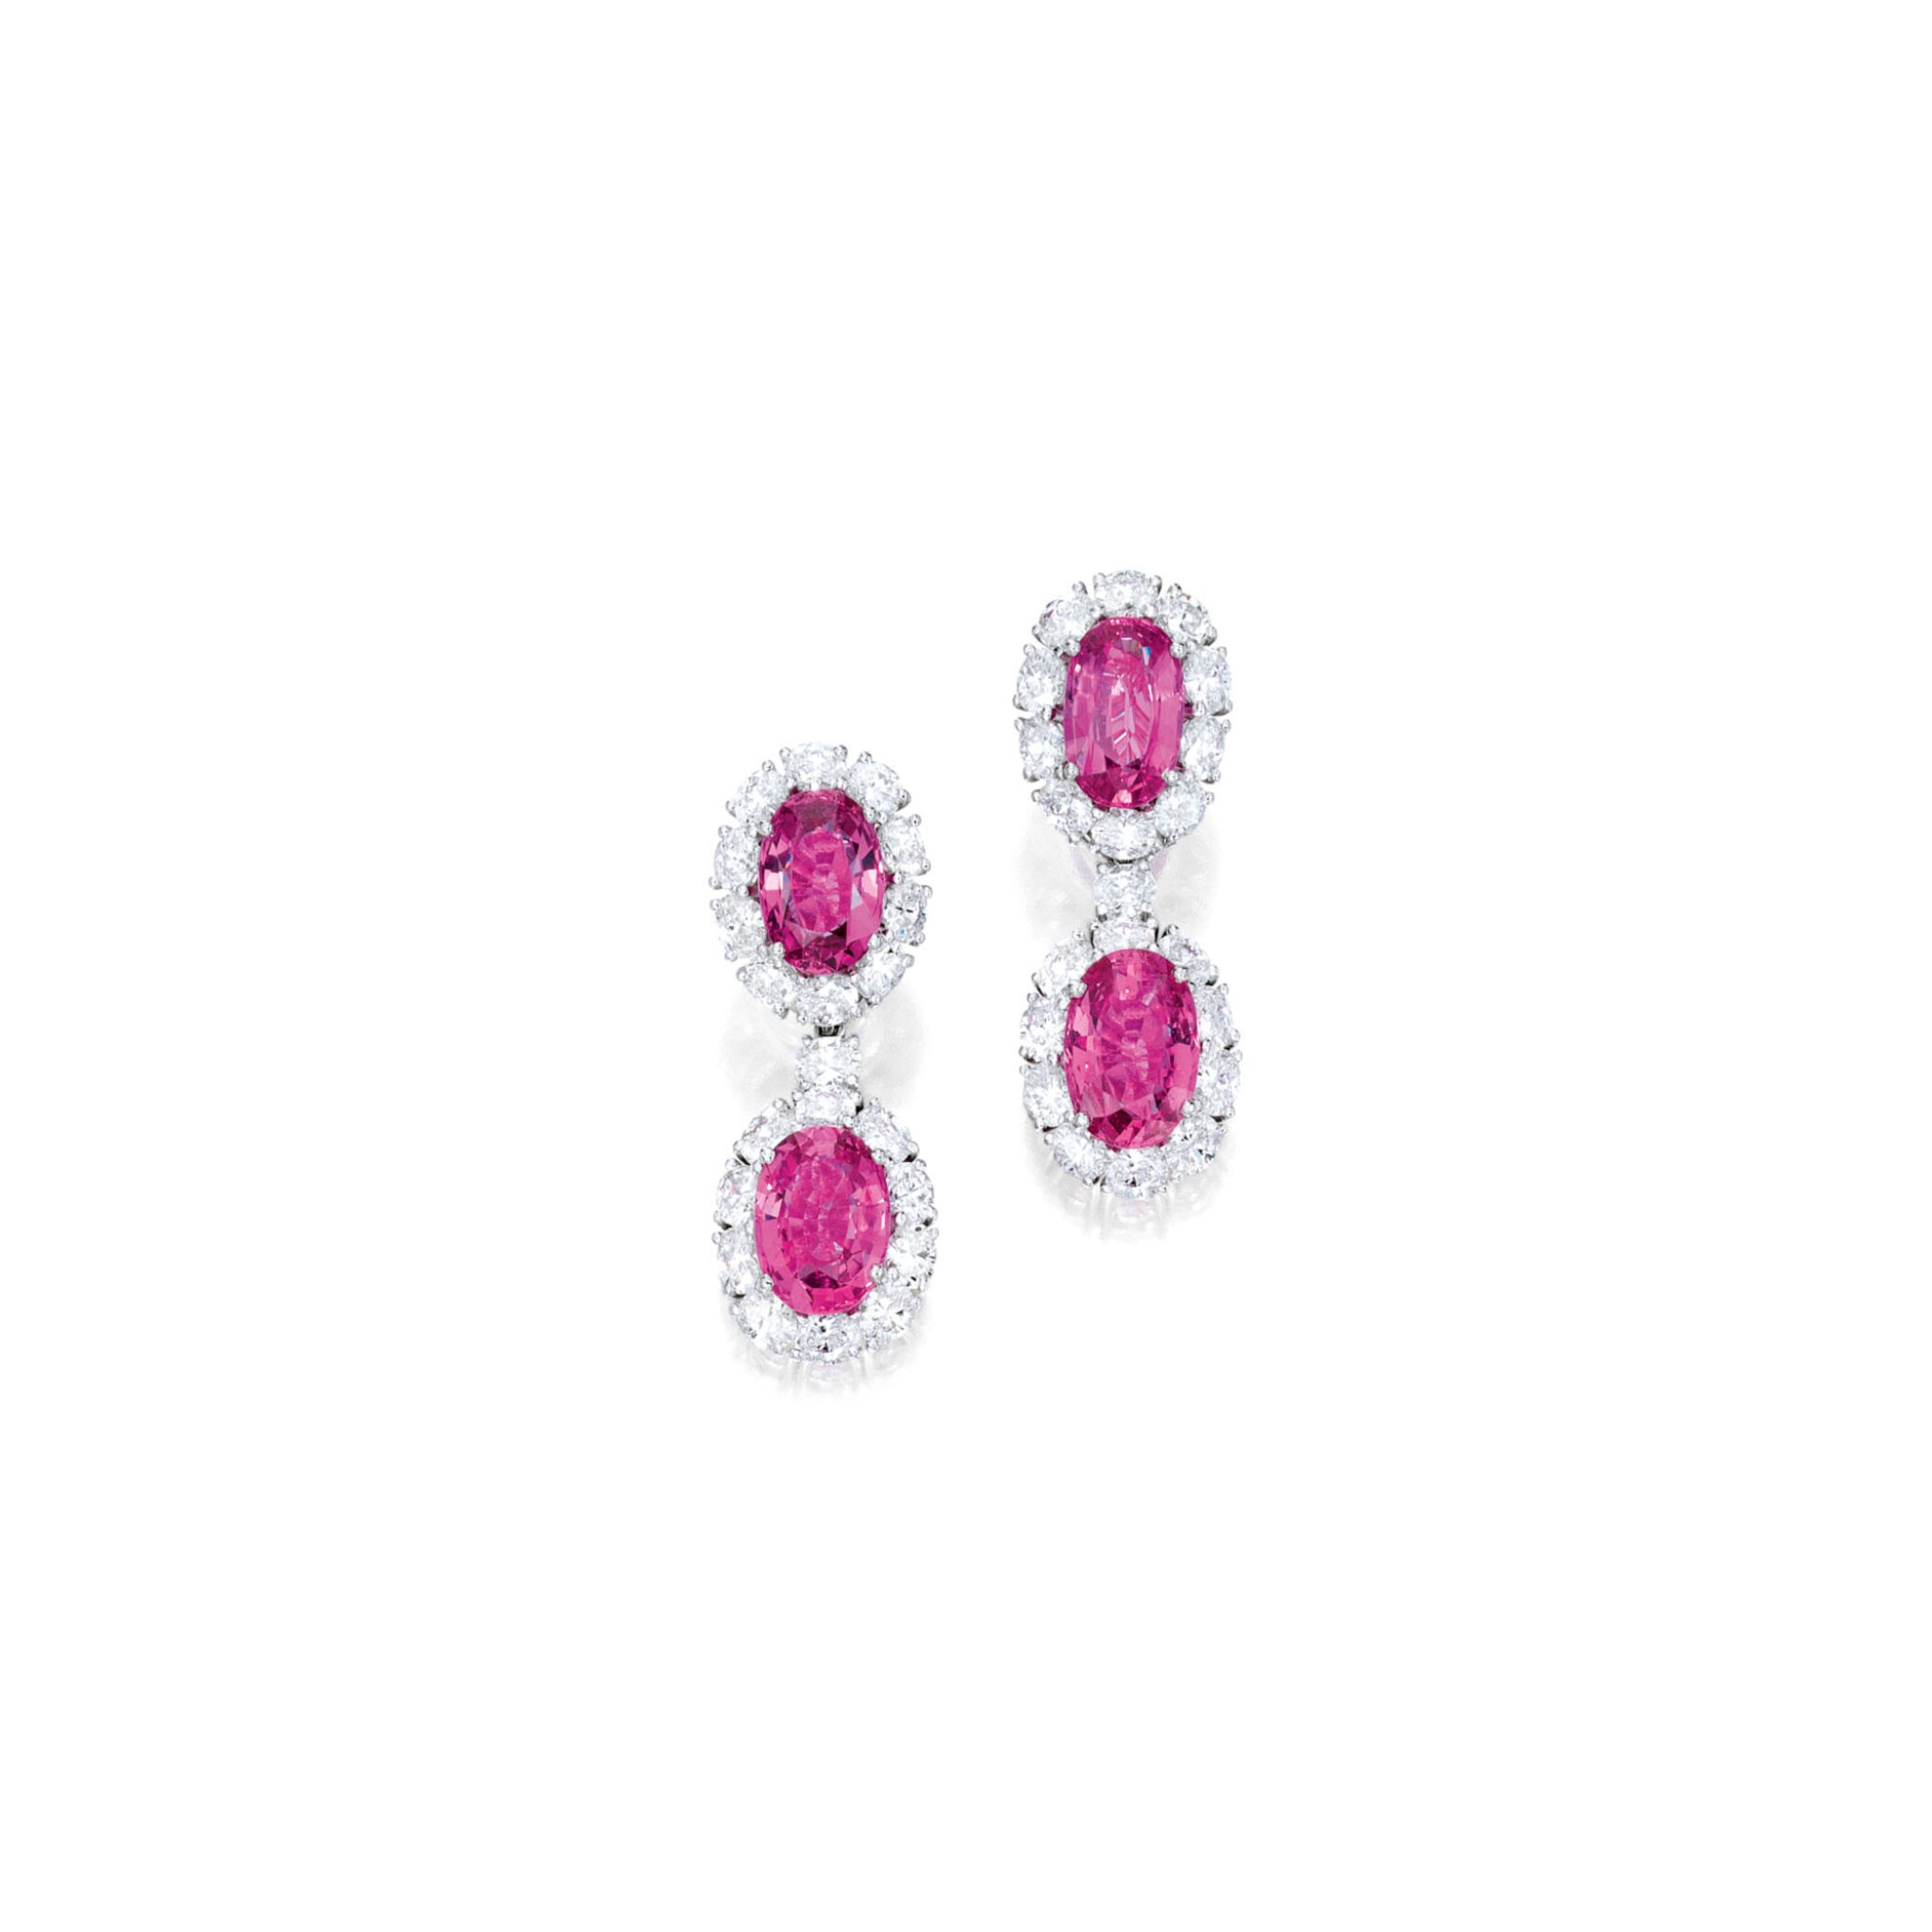 View full screen - View 1 of Lot 402. PAIR OF PINK SAPPHIRE AND DIAMOND PENDANT-EARCLIPS | 粉紅色剛玉配鑽石吊耳環一對.